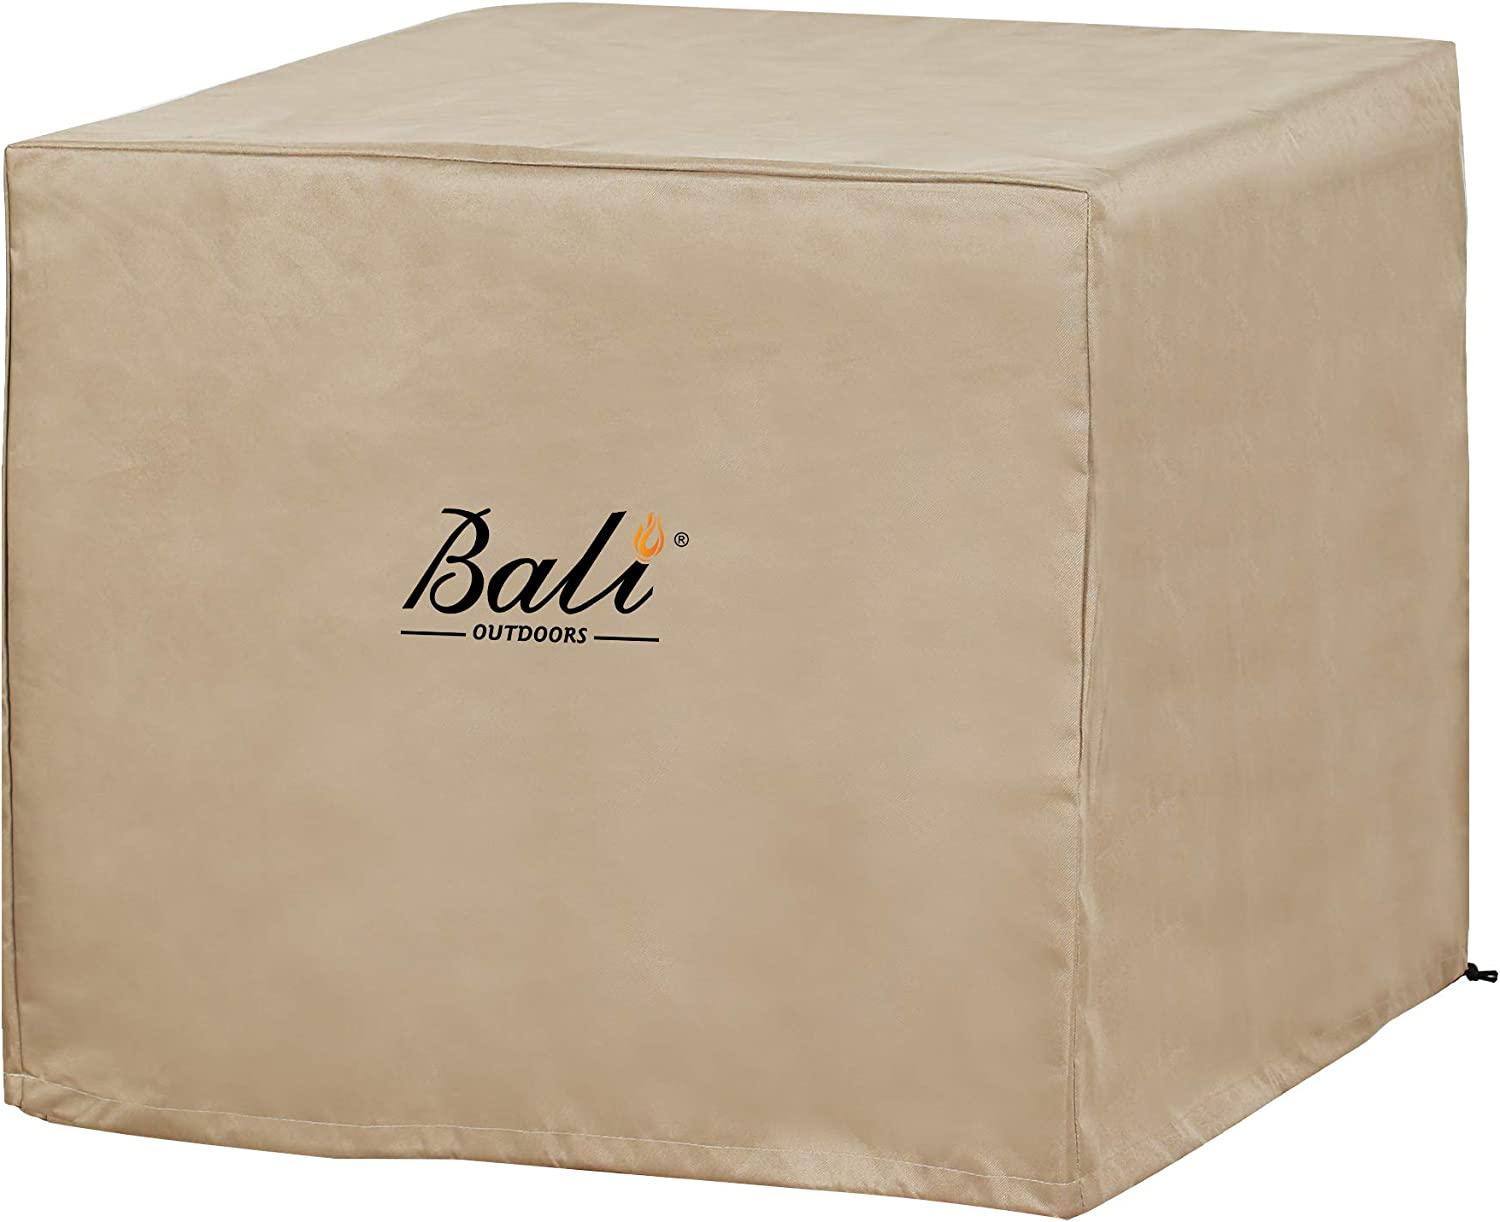 BALI OUTDOORS 32 Inch Limited time sale Square Patio D Fire Cover Table Pit Max 45% OFF Heavy